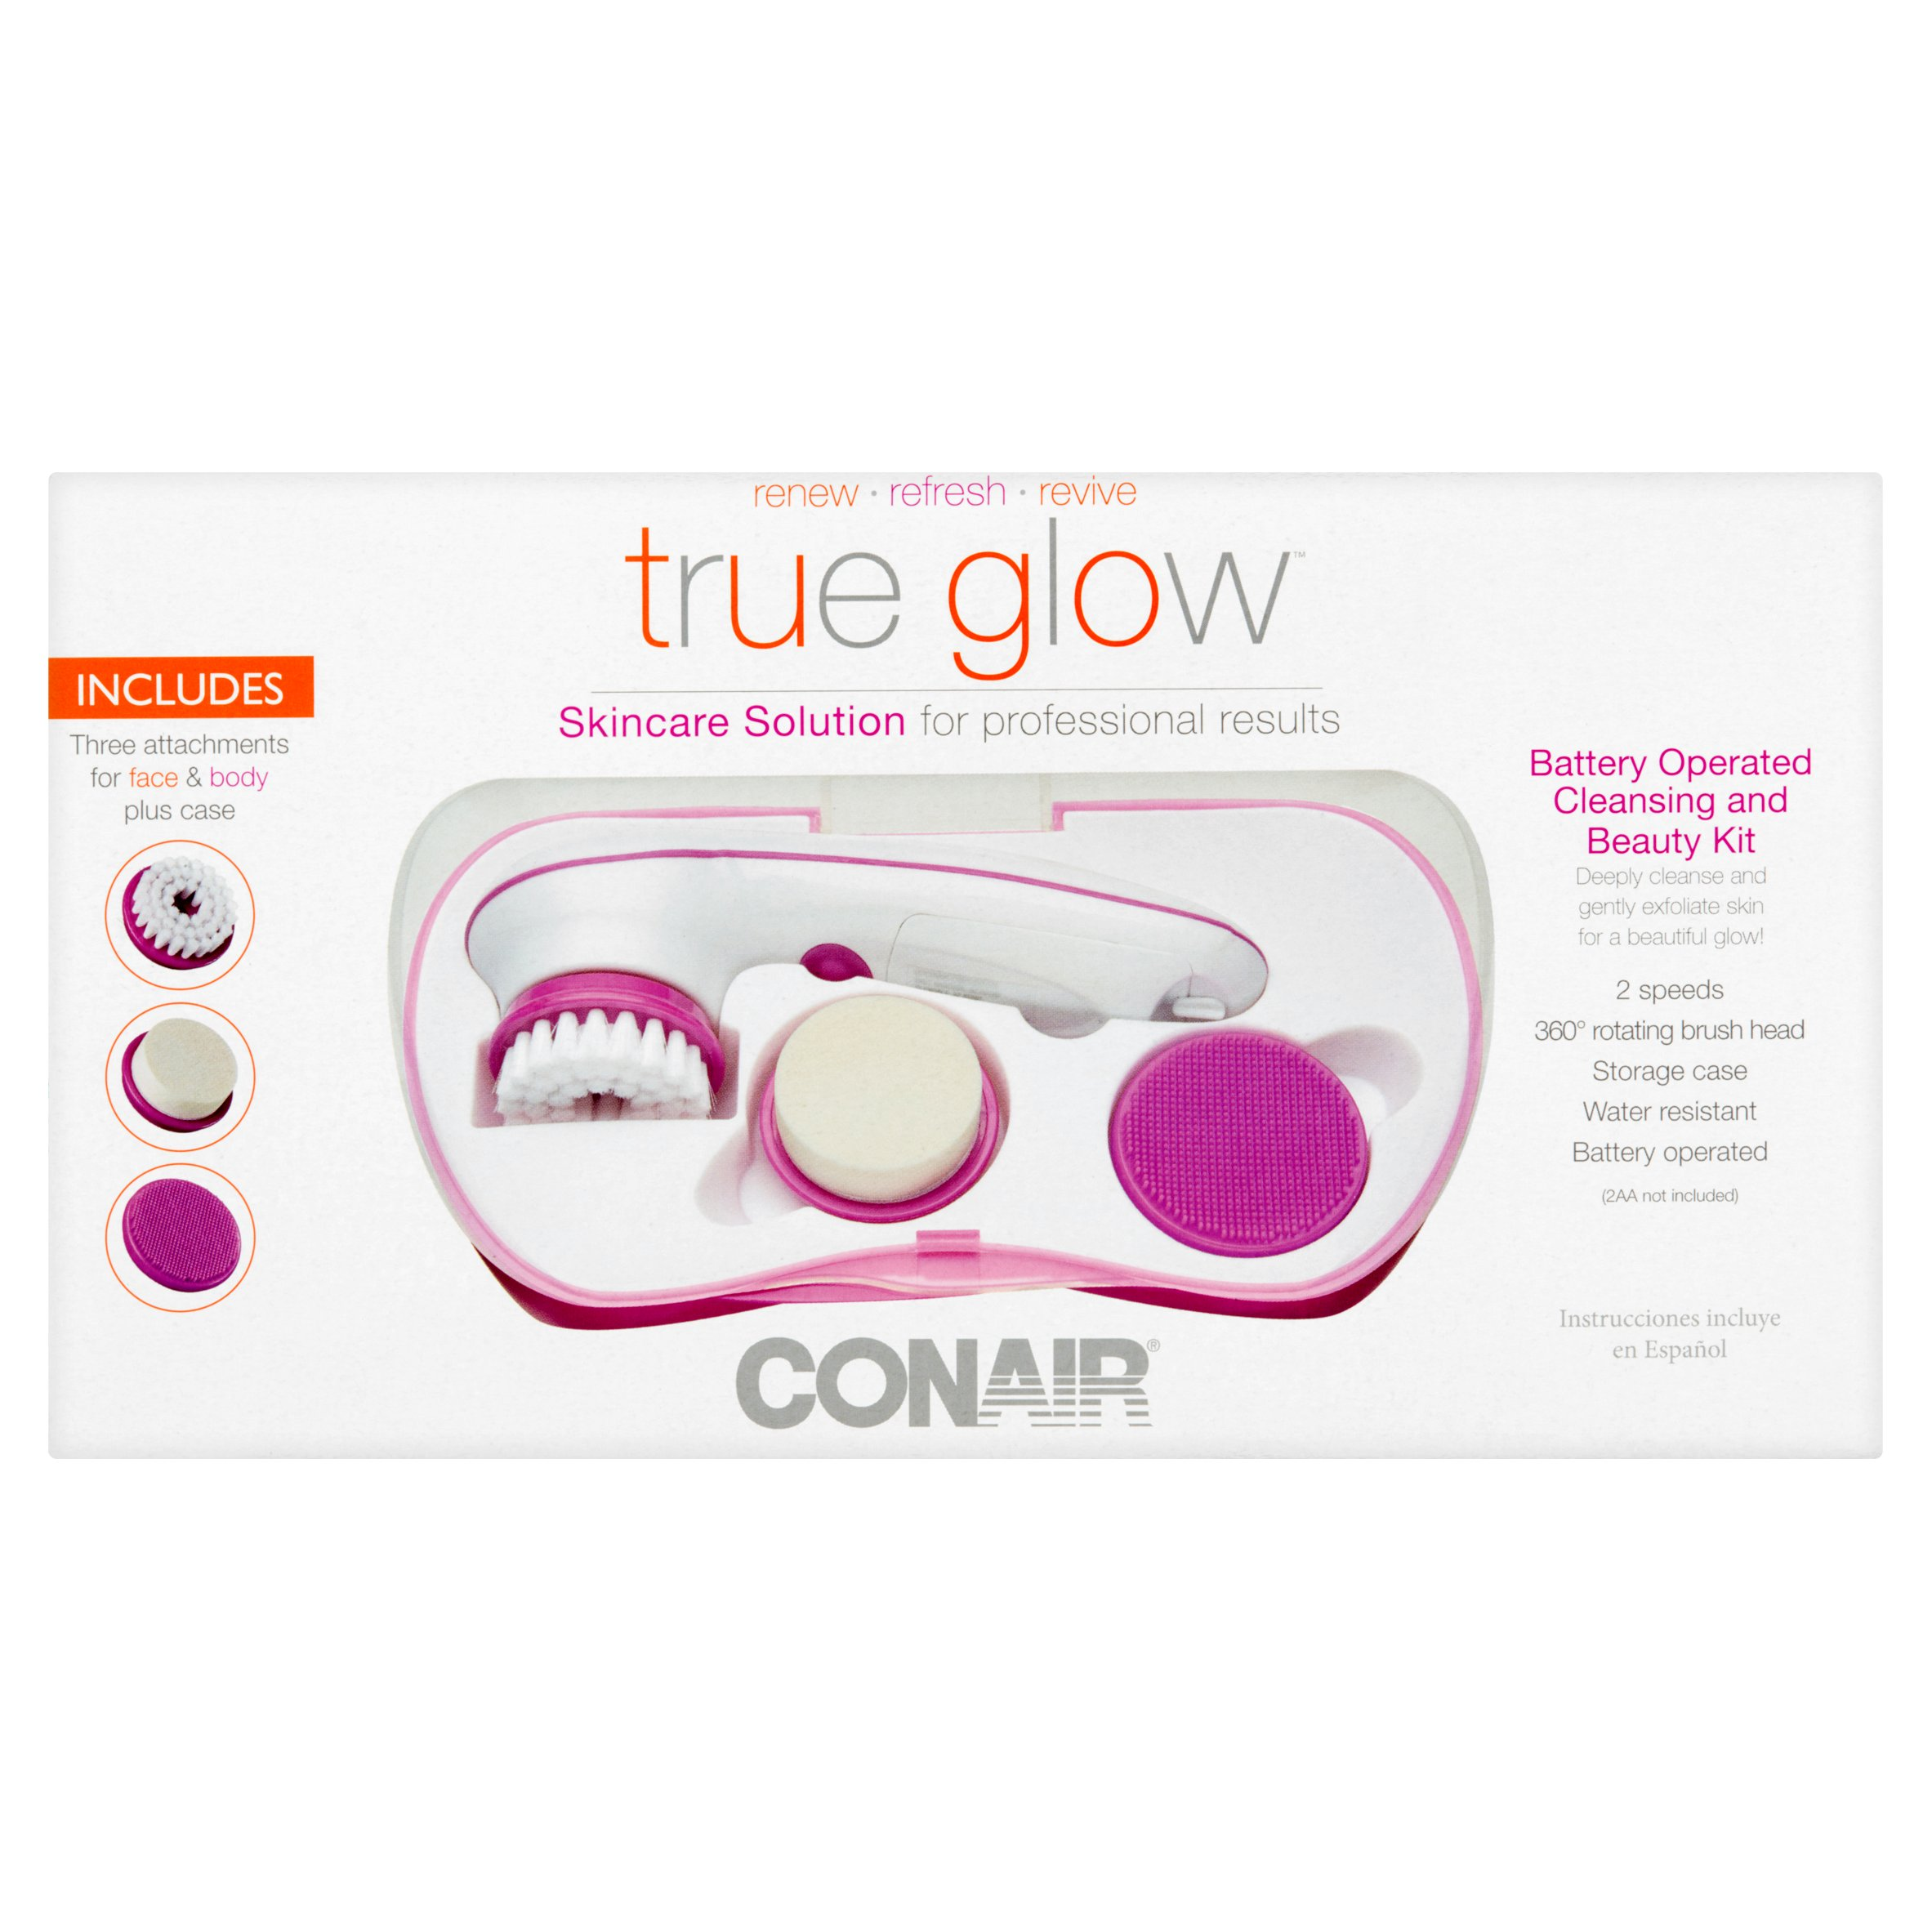 Conair True Glow Battery Operated Cleansing and Beauty Kit